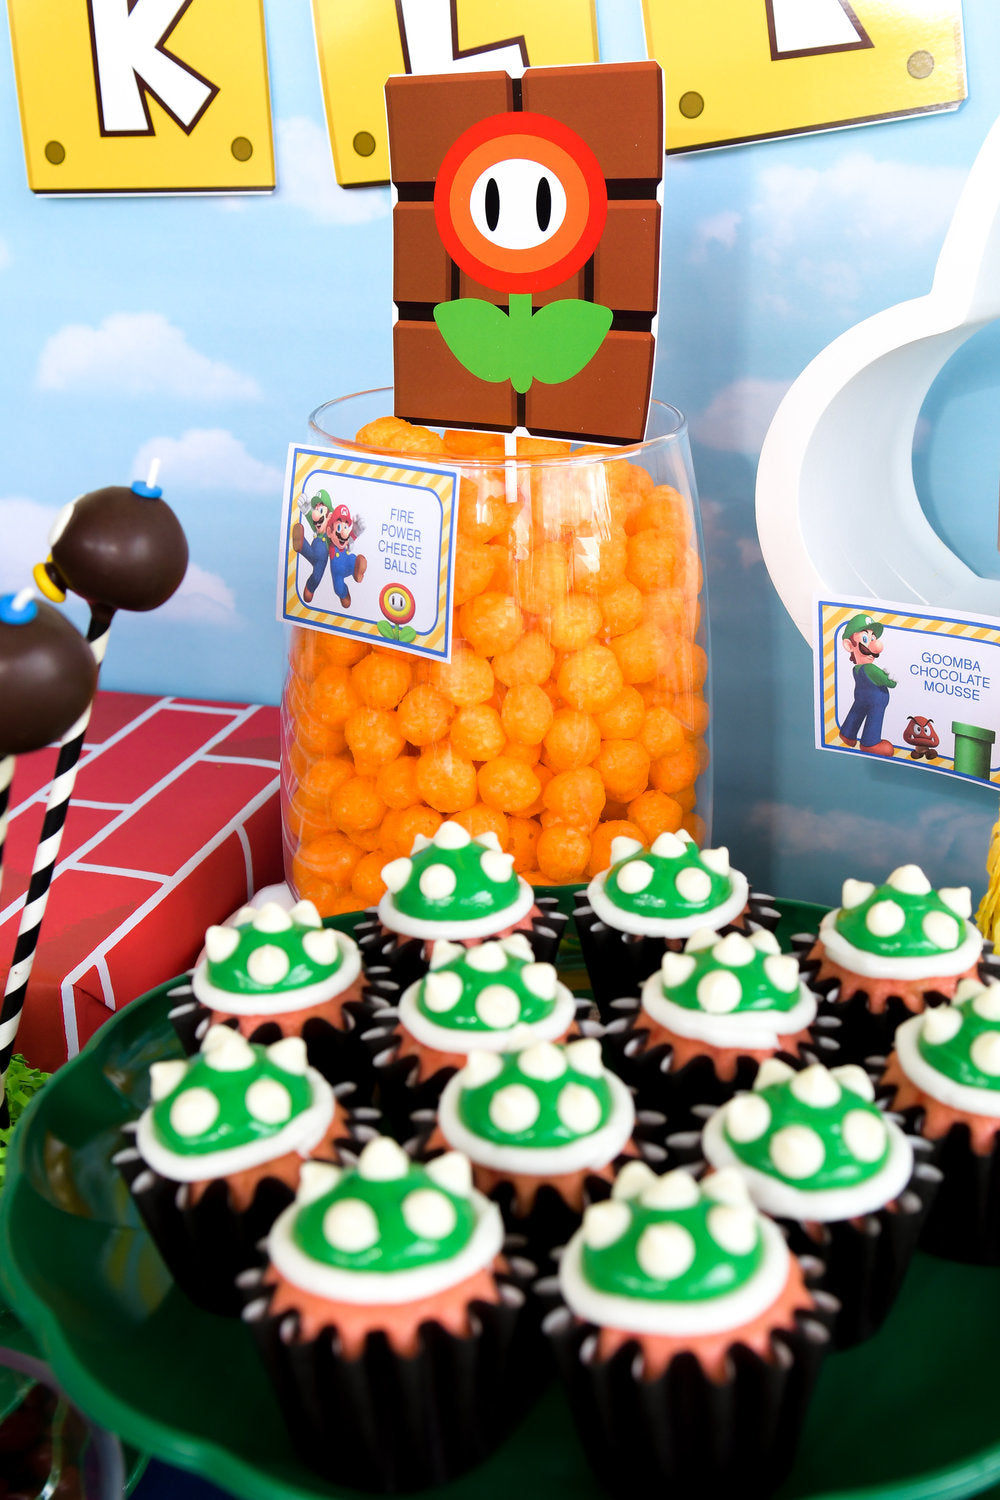 Super Mario Bros themed cupcakes and cheesy puffs